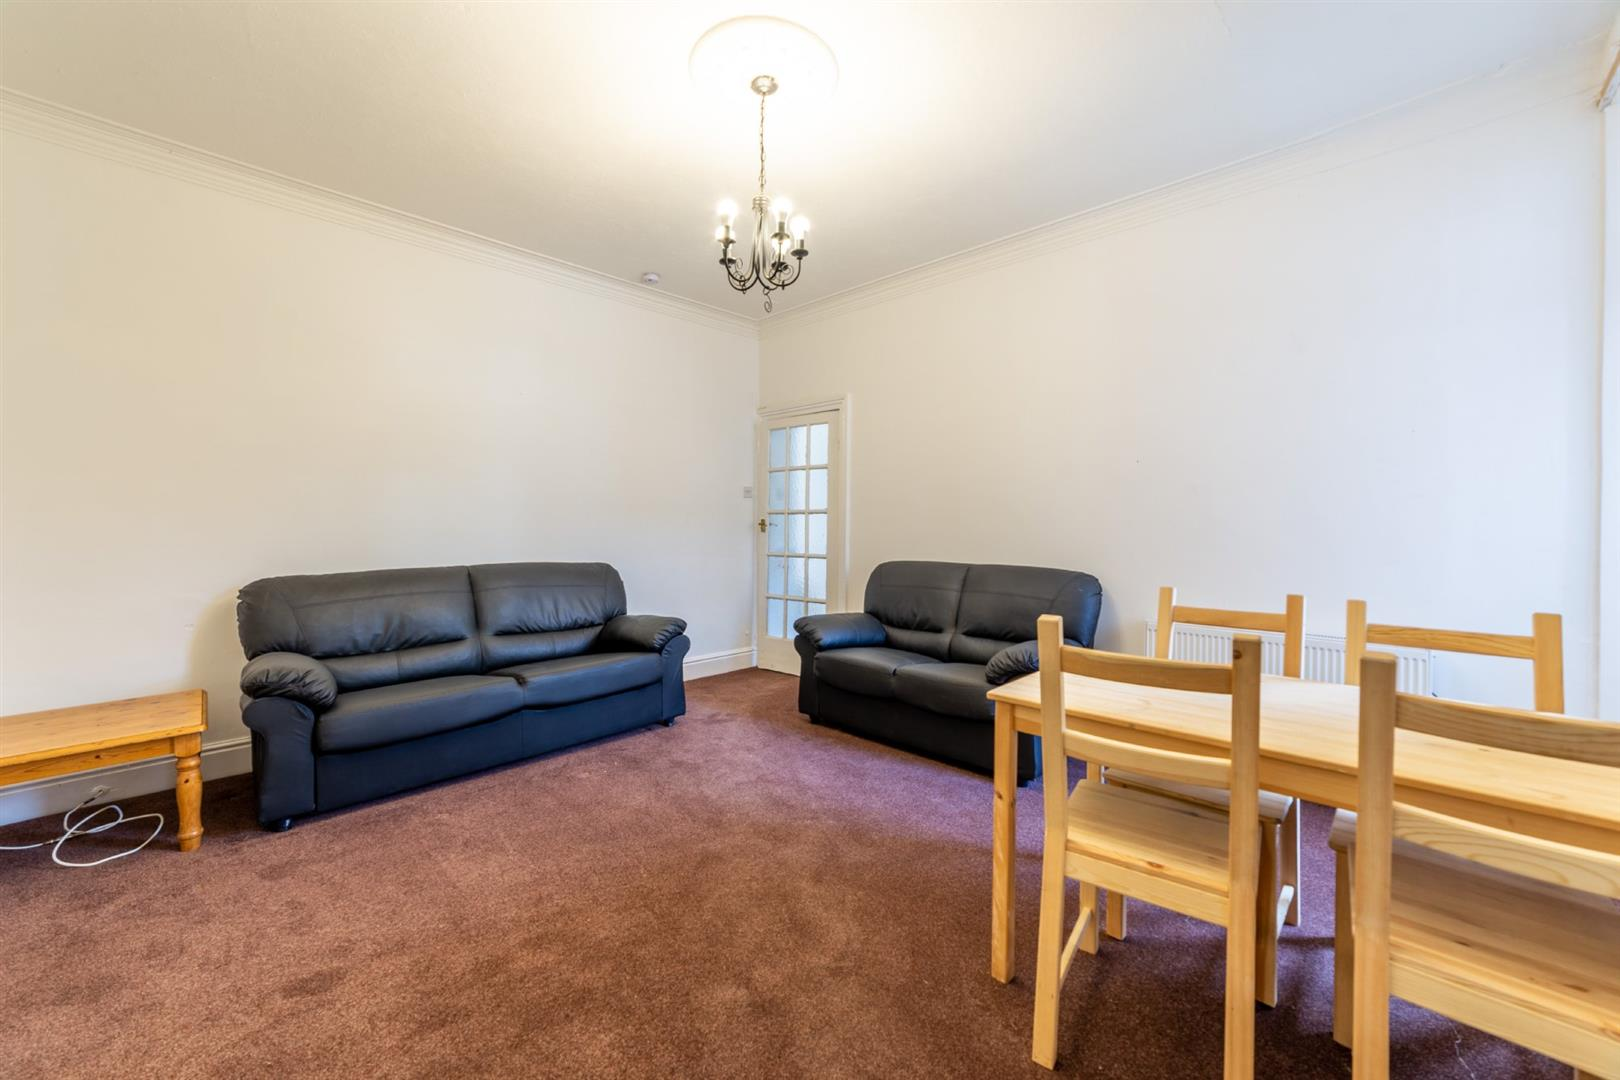 2 bed flat to rent in Newcastle Upon Tyne, NE2 3DB, NE2